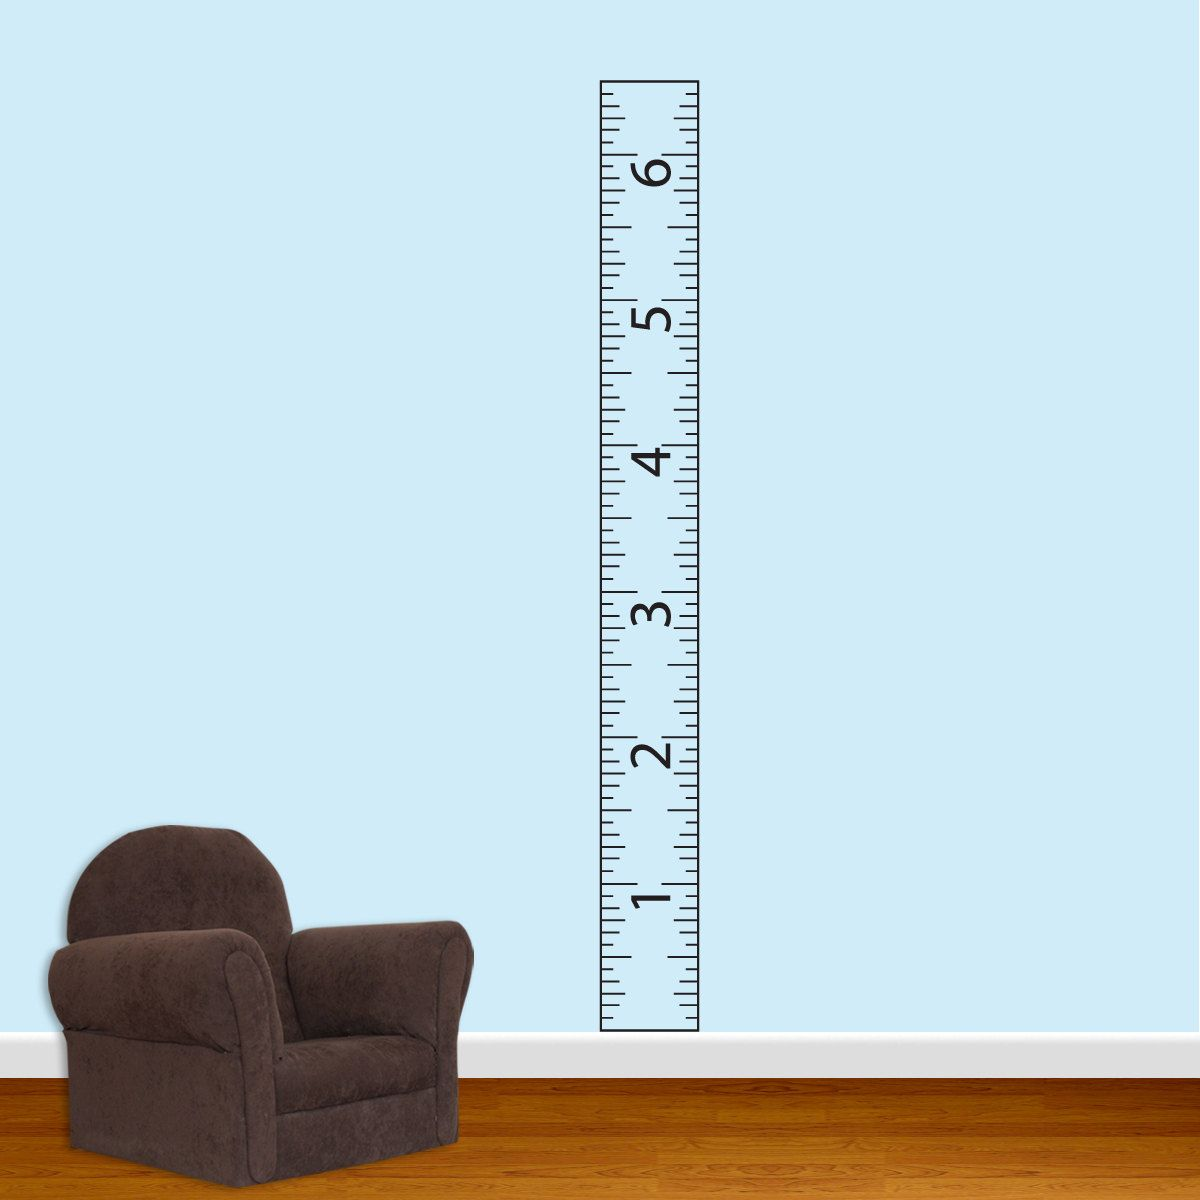 Childrens Ruler Growth Chart Vinyl Wall Decal With Border - Ruler growth chart vinyl decal